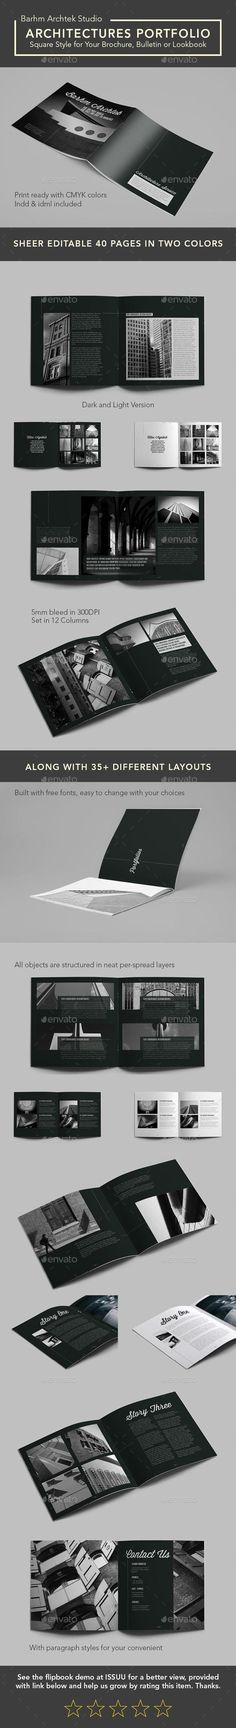 new modern architecture brochure template indesign indd 24 pages